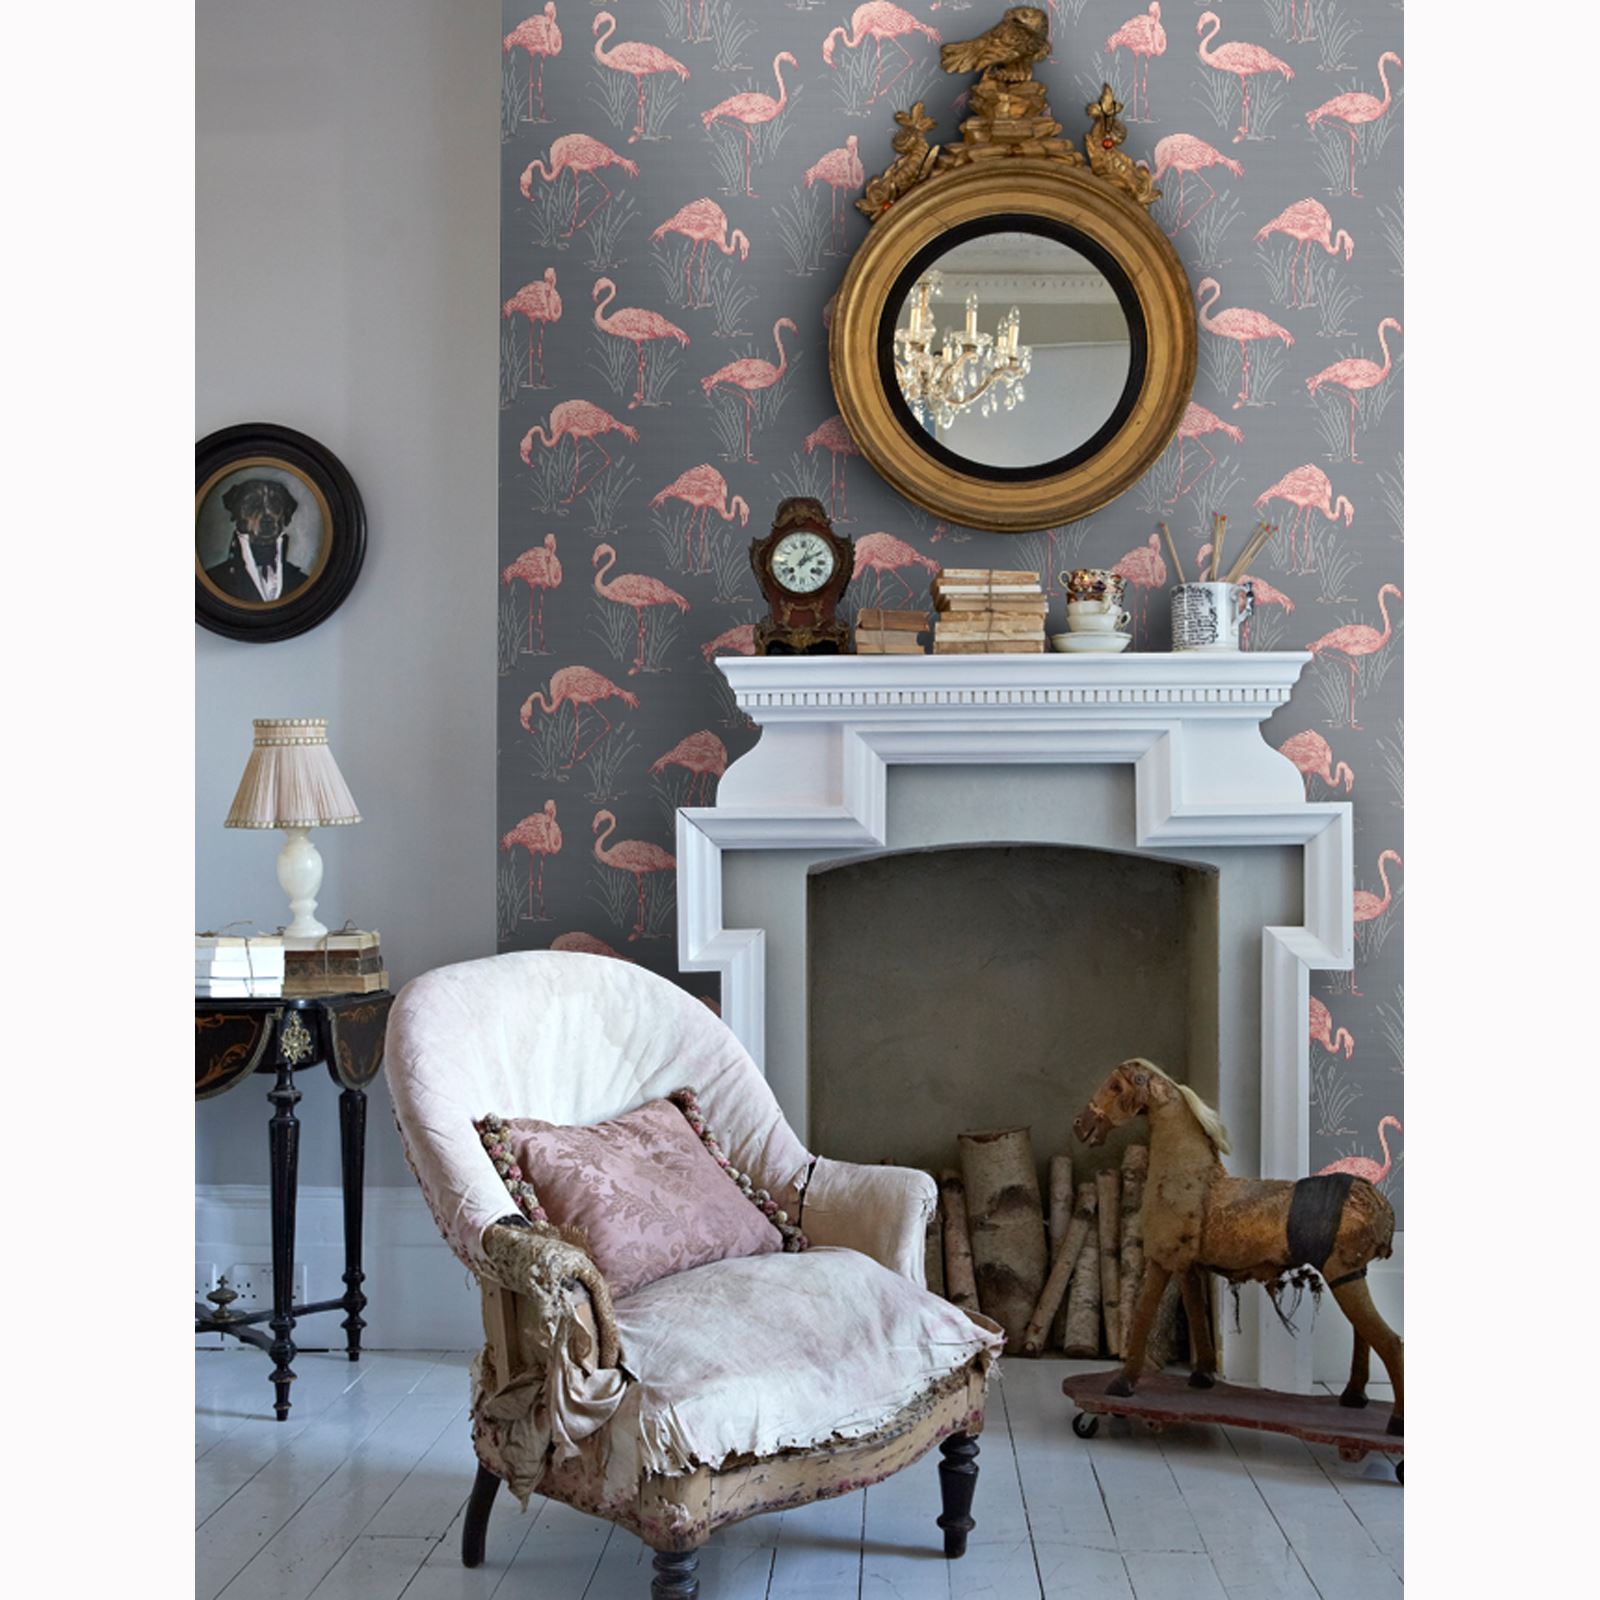 lagune vintage flamant rose papier peint vert rose 252602 gris corail 252603 ebay. Black Bedroom Furniture Sets. Home Design Ideas